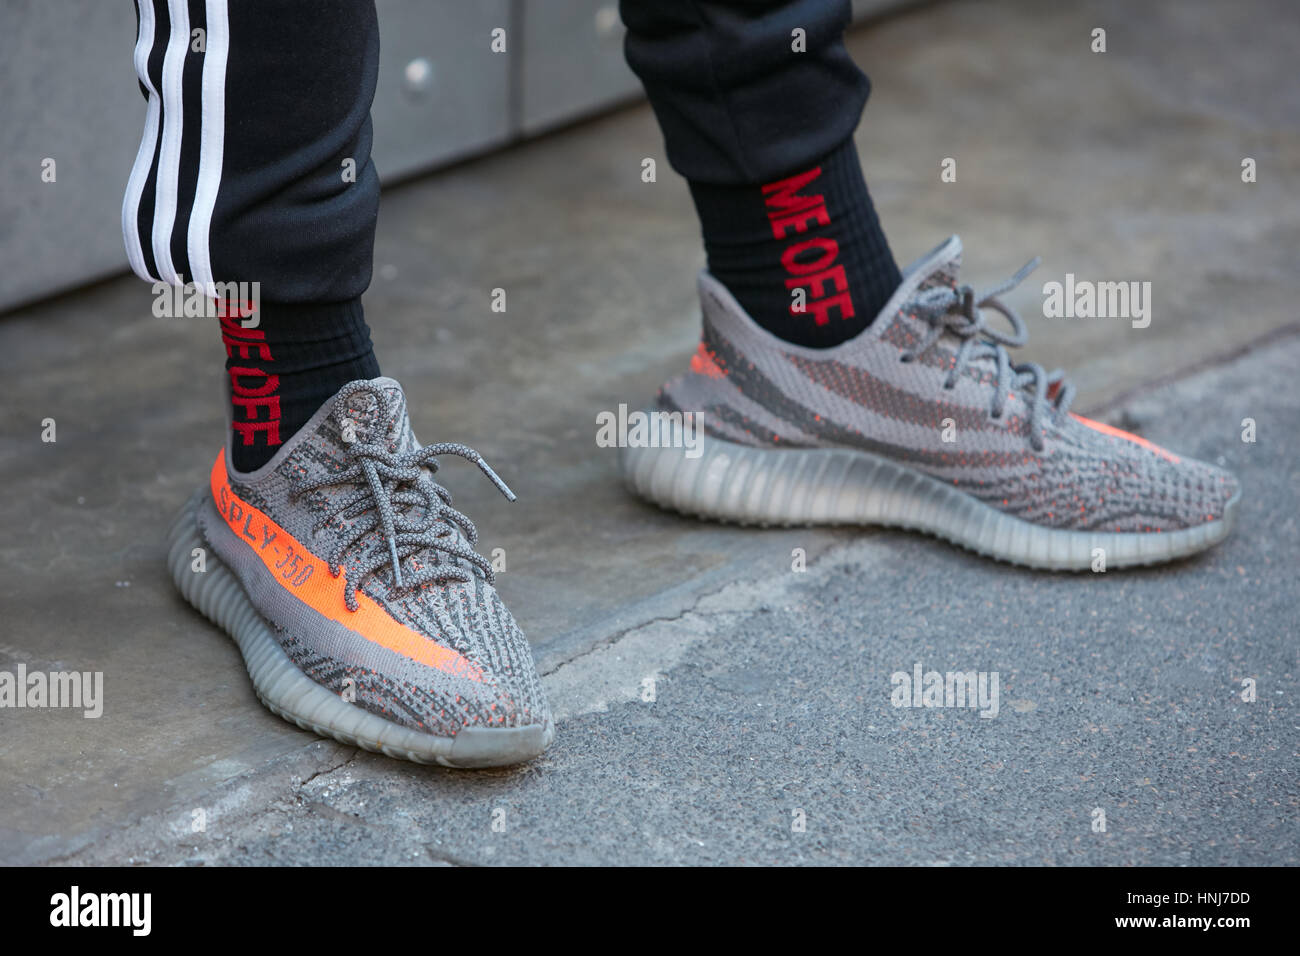 quality design fd3c2 a5727 Man with Adidas Yeezy Boost gray shoes before N 21 fashion ...